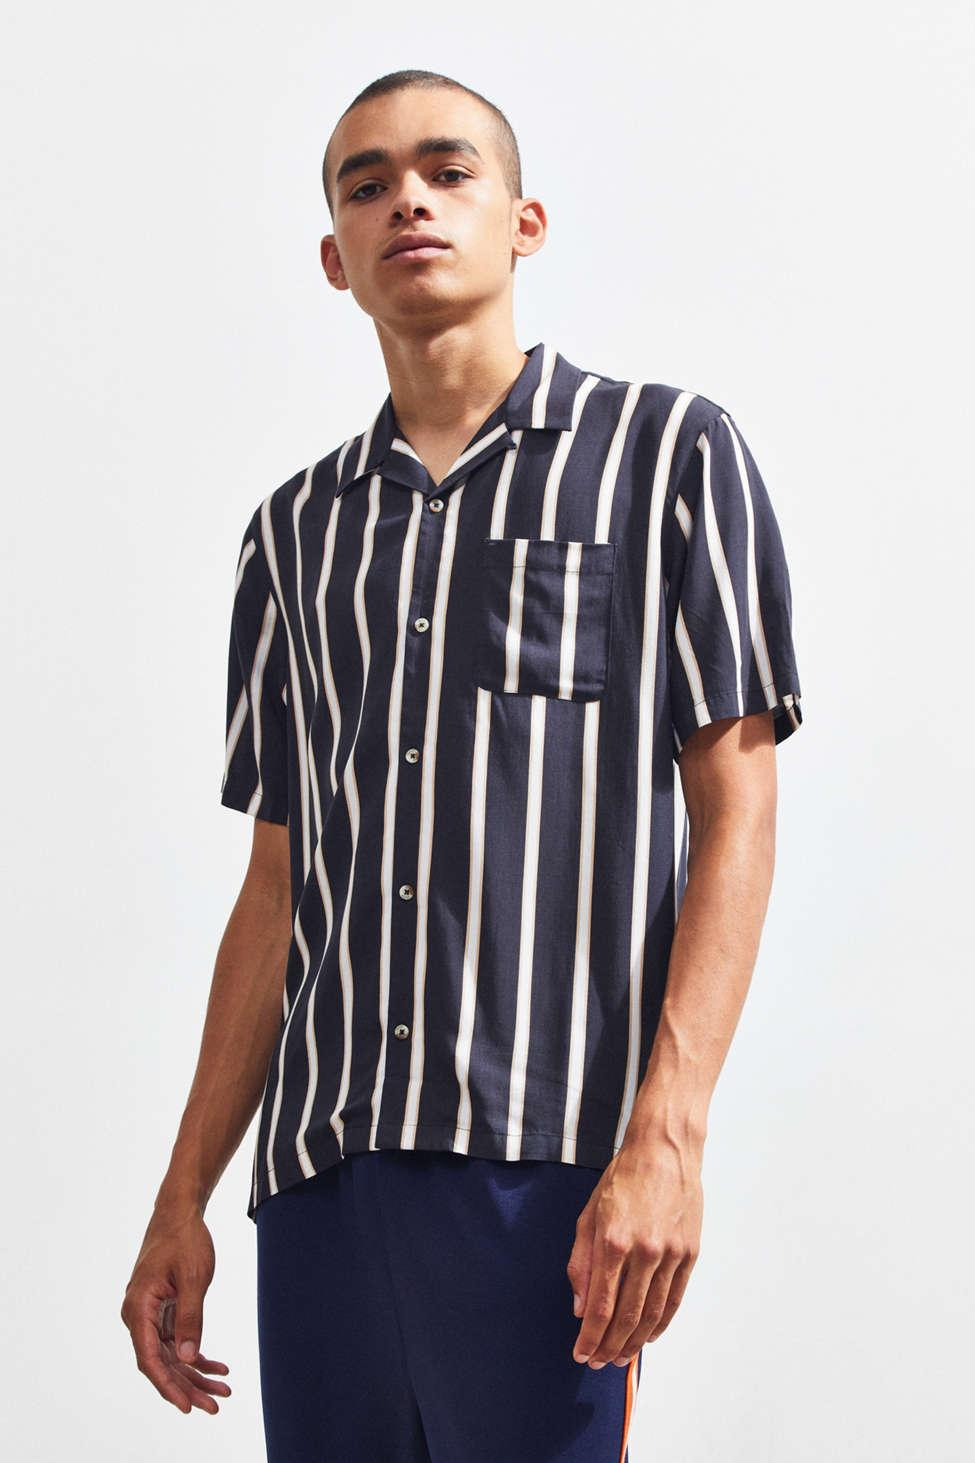 69326492d Urban Outfitters Uo Sport Striped Rayon Short Sleeve Button-down ...